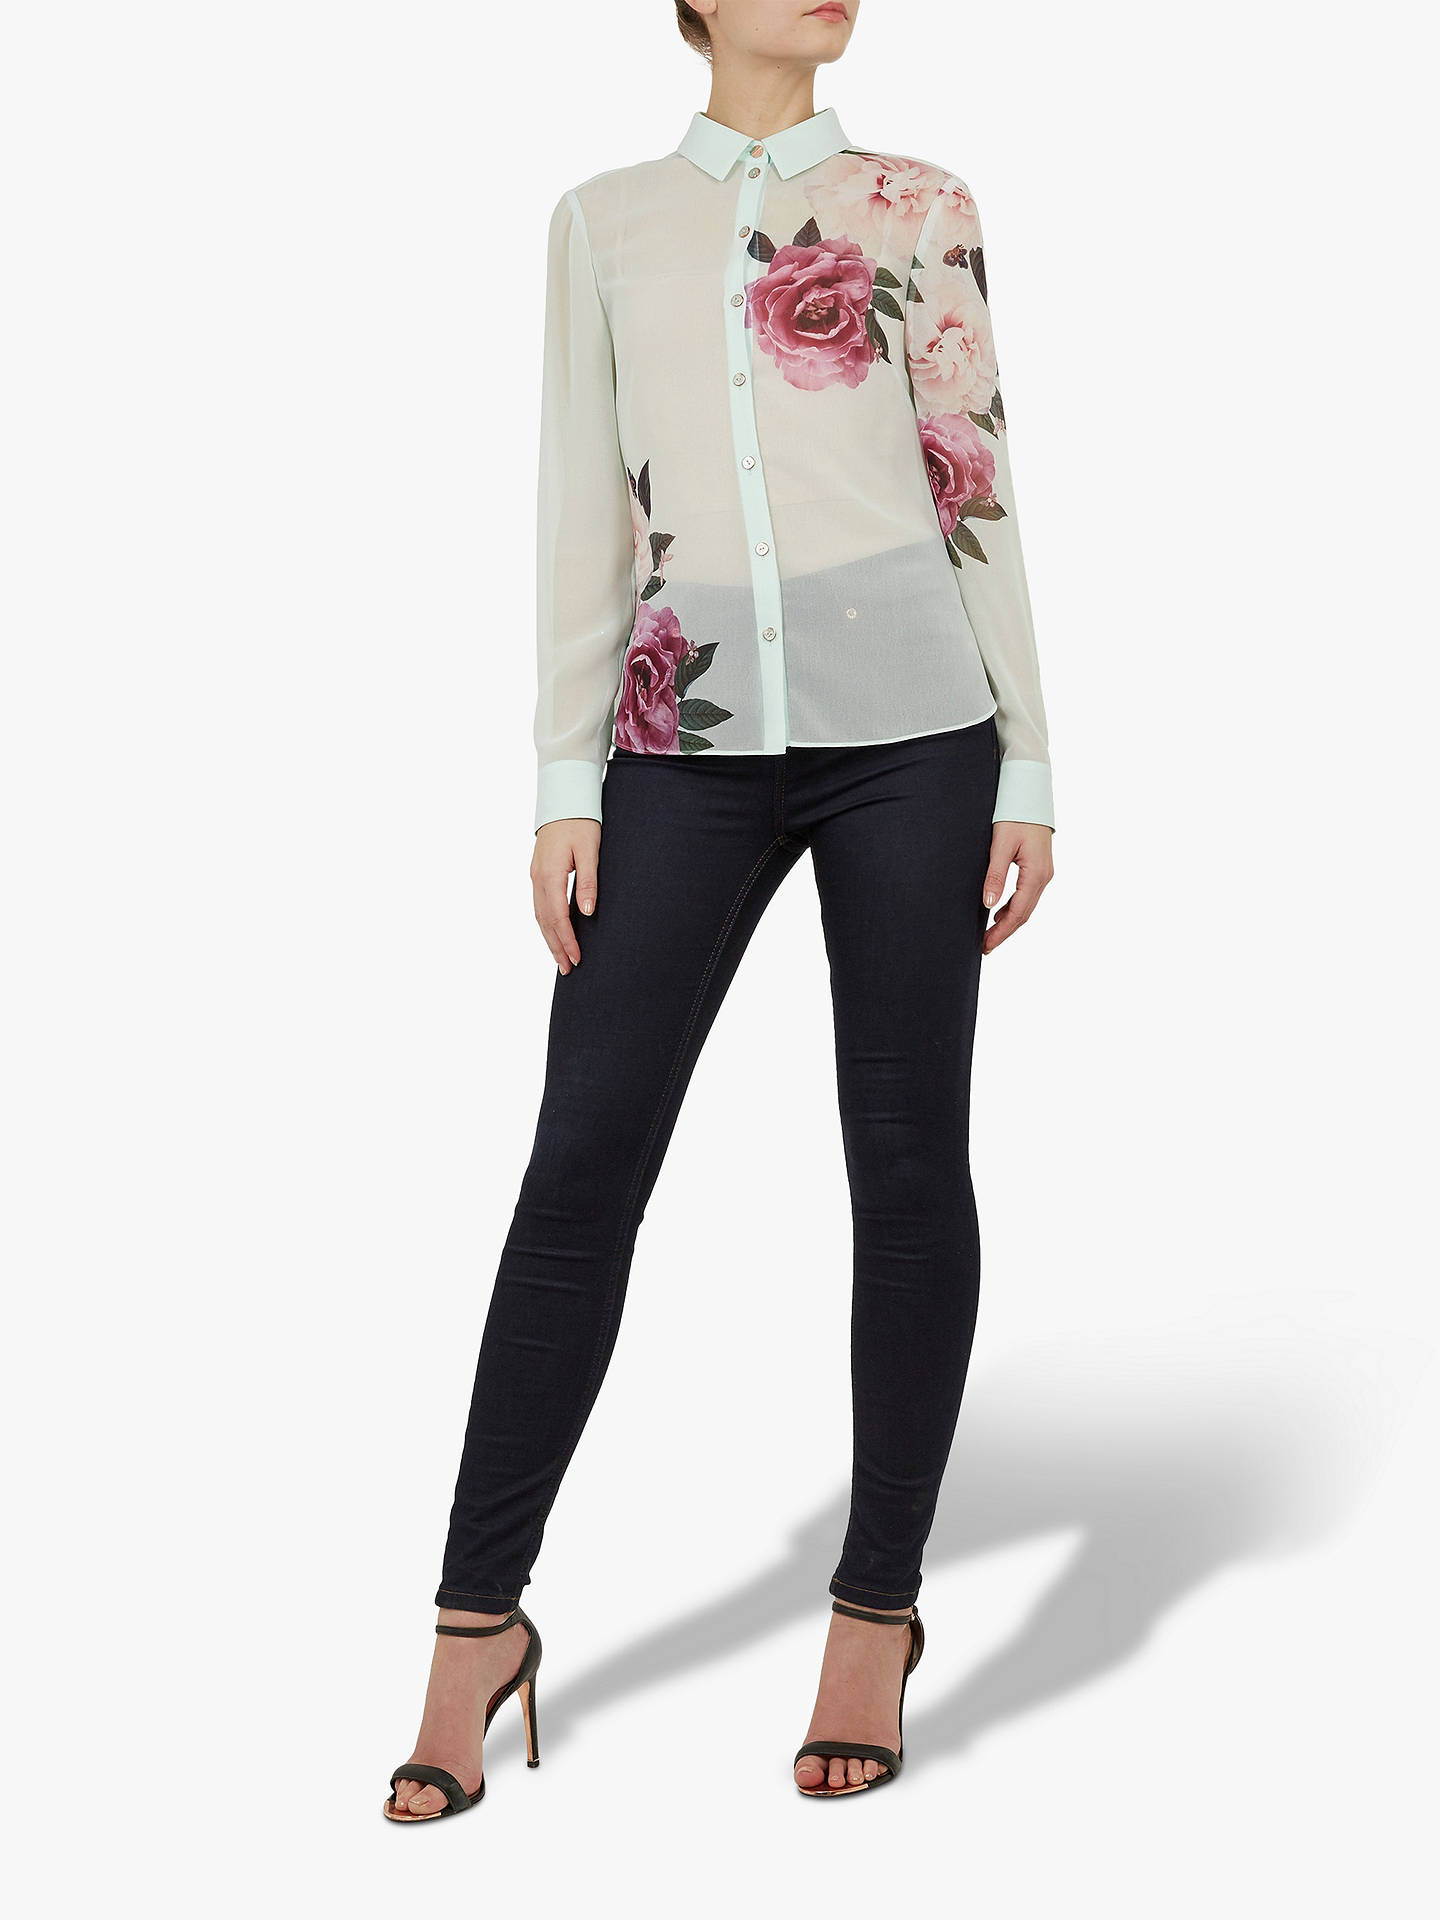 514eadbaeb5c5 ... Buy Ted Baker Zaylaa Floral Blouse